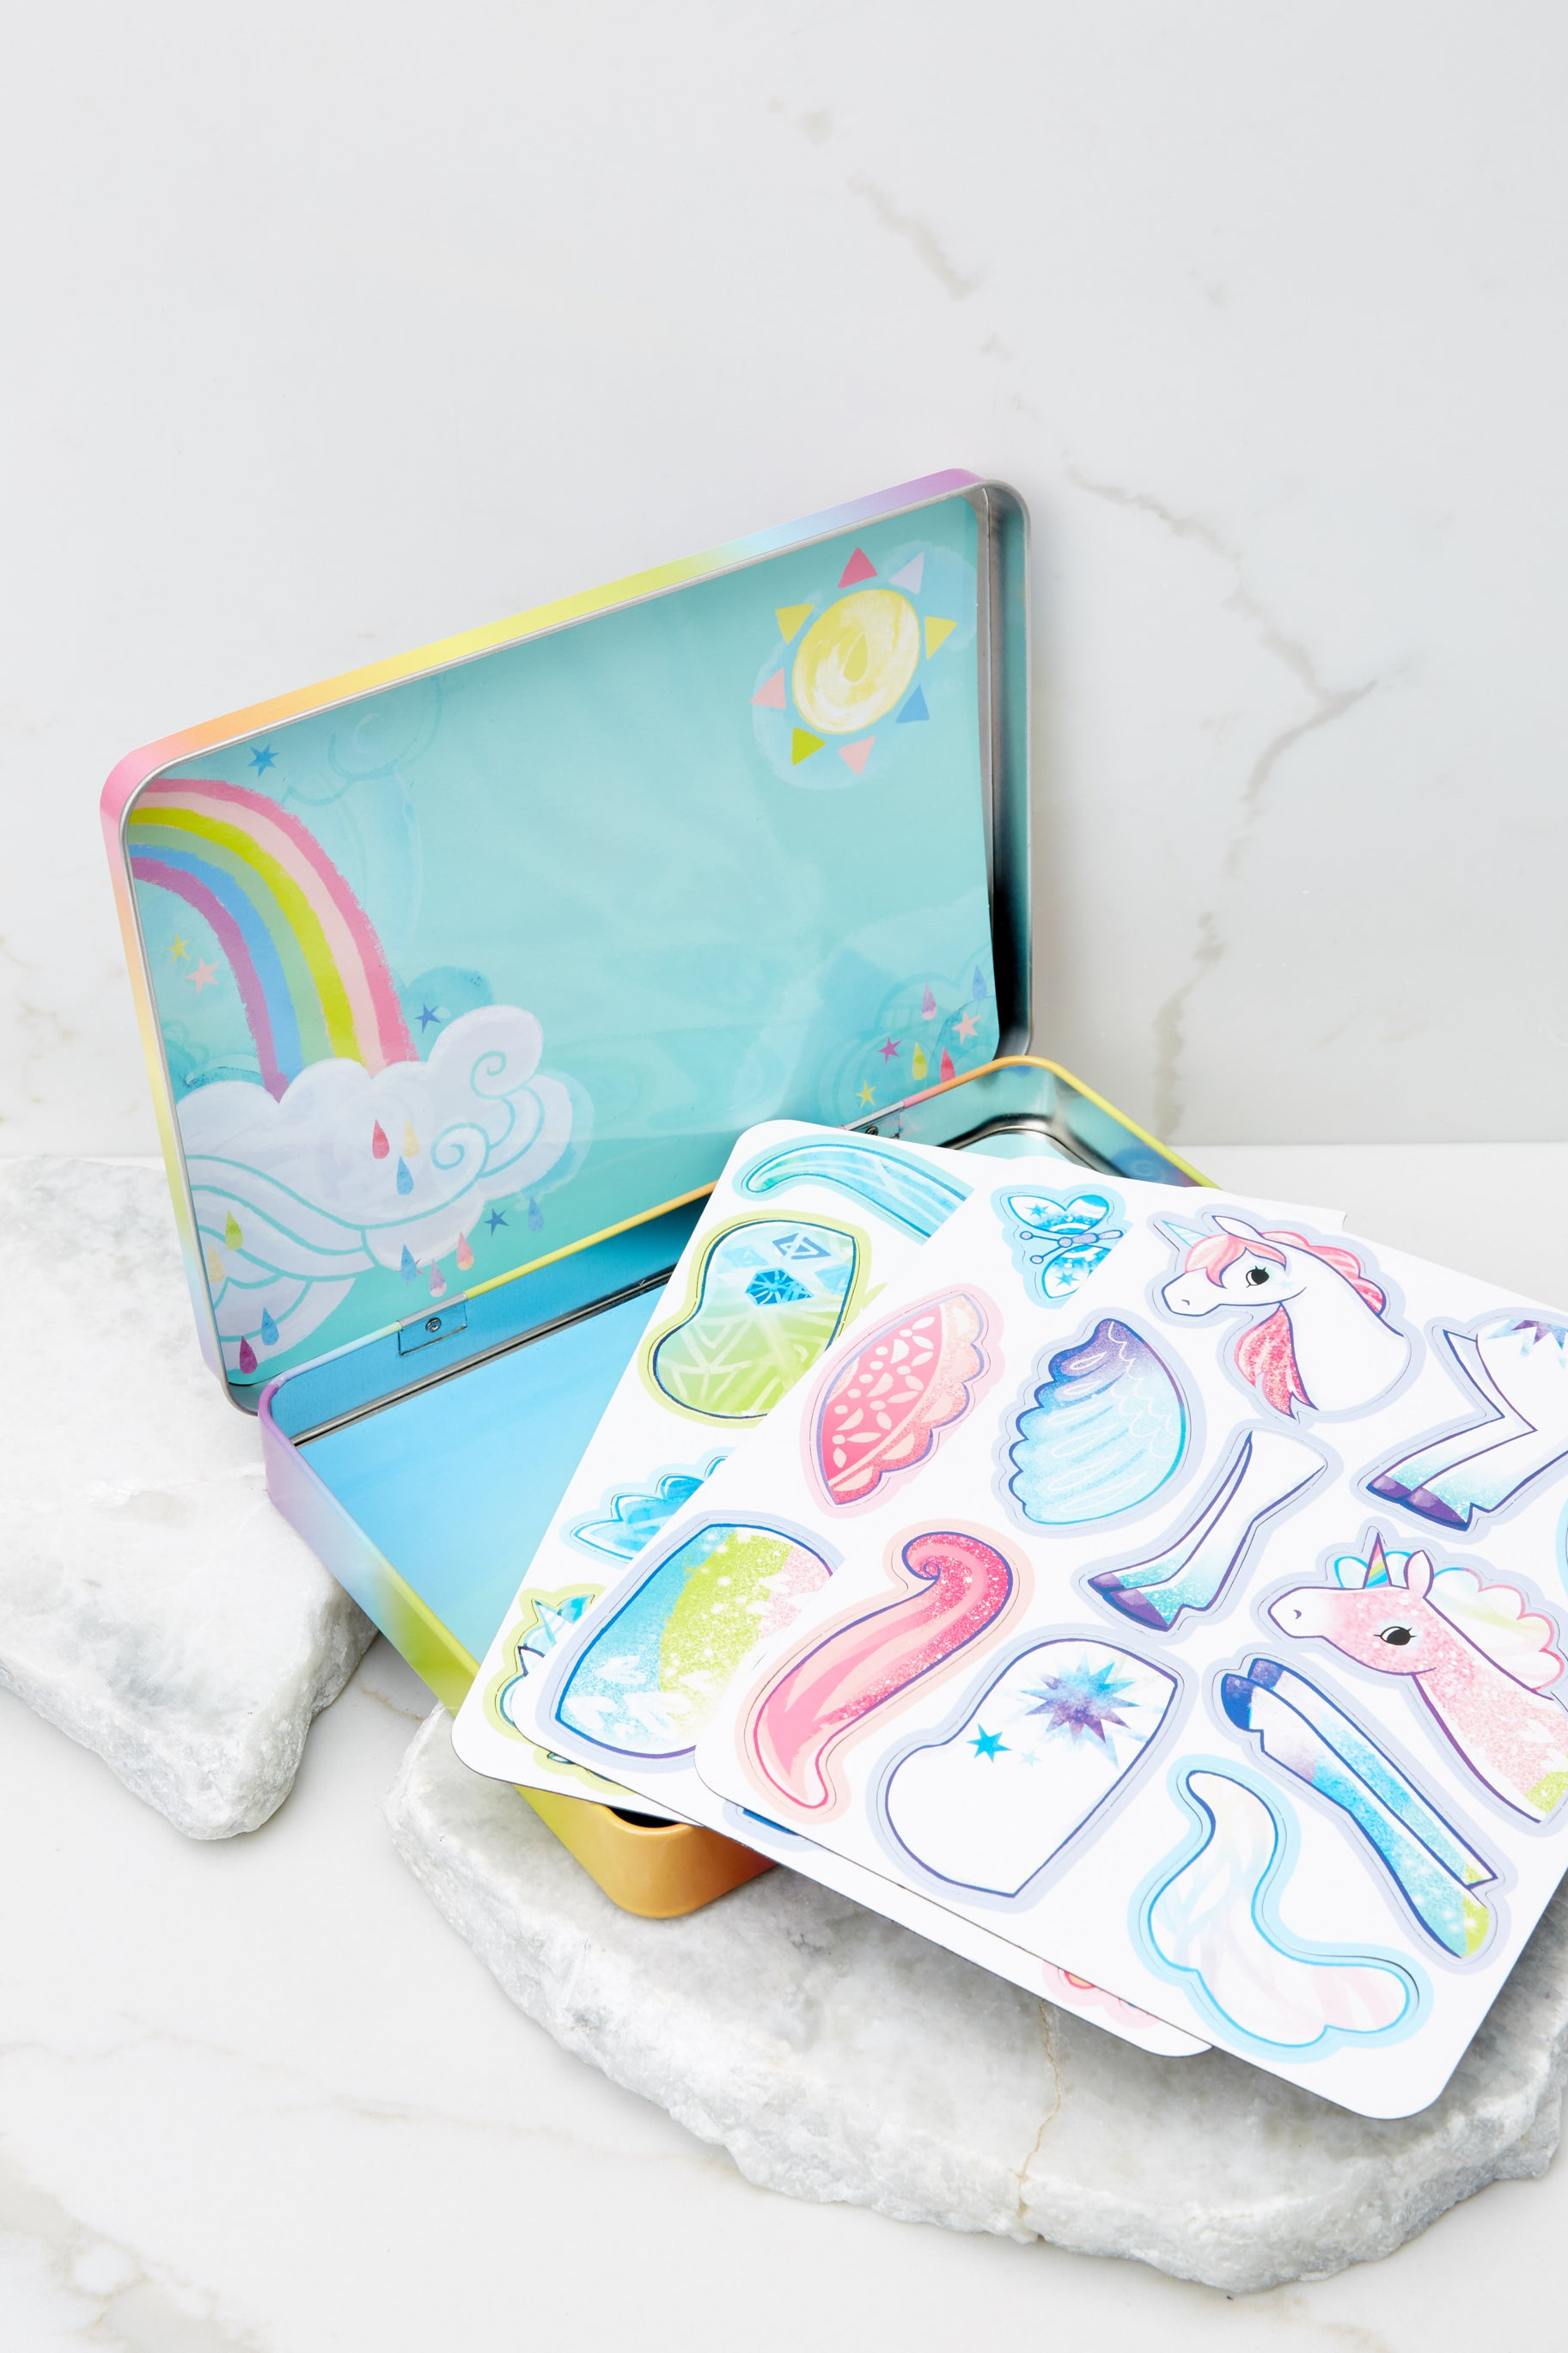 2 Magnetic Unicorn Game at reddress.com